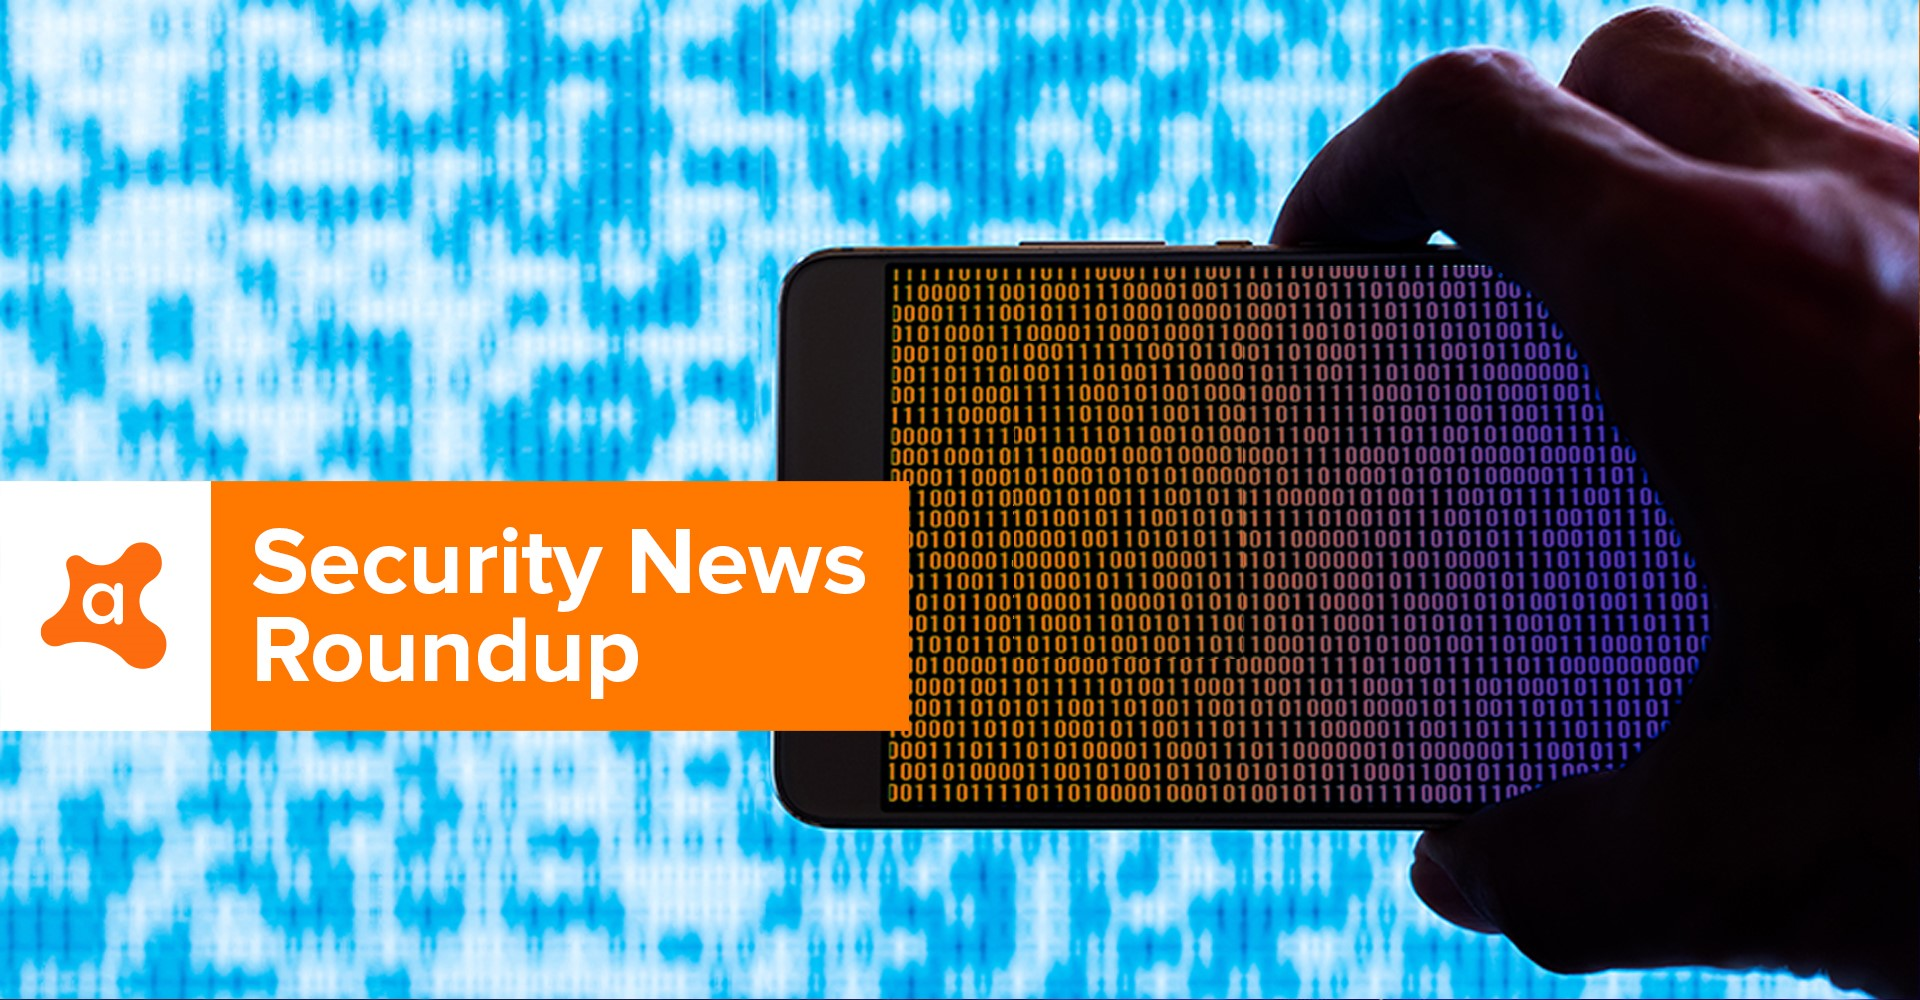 You are currently viewing Apps with adware and more security news